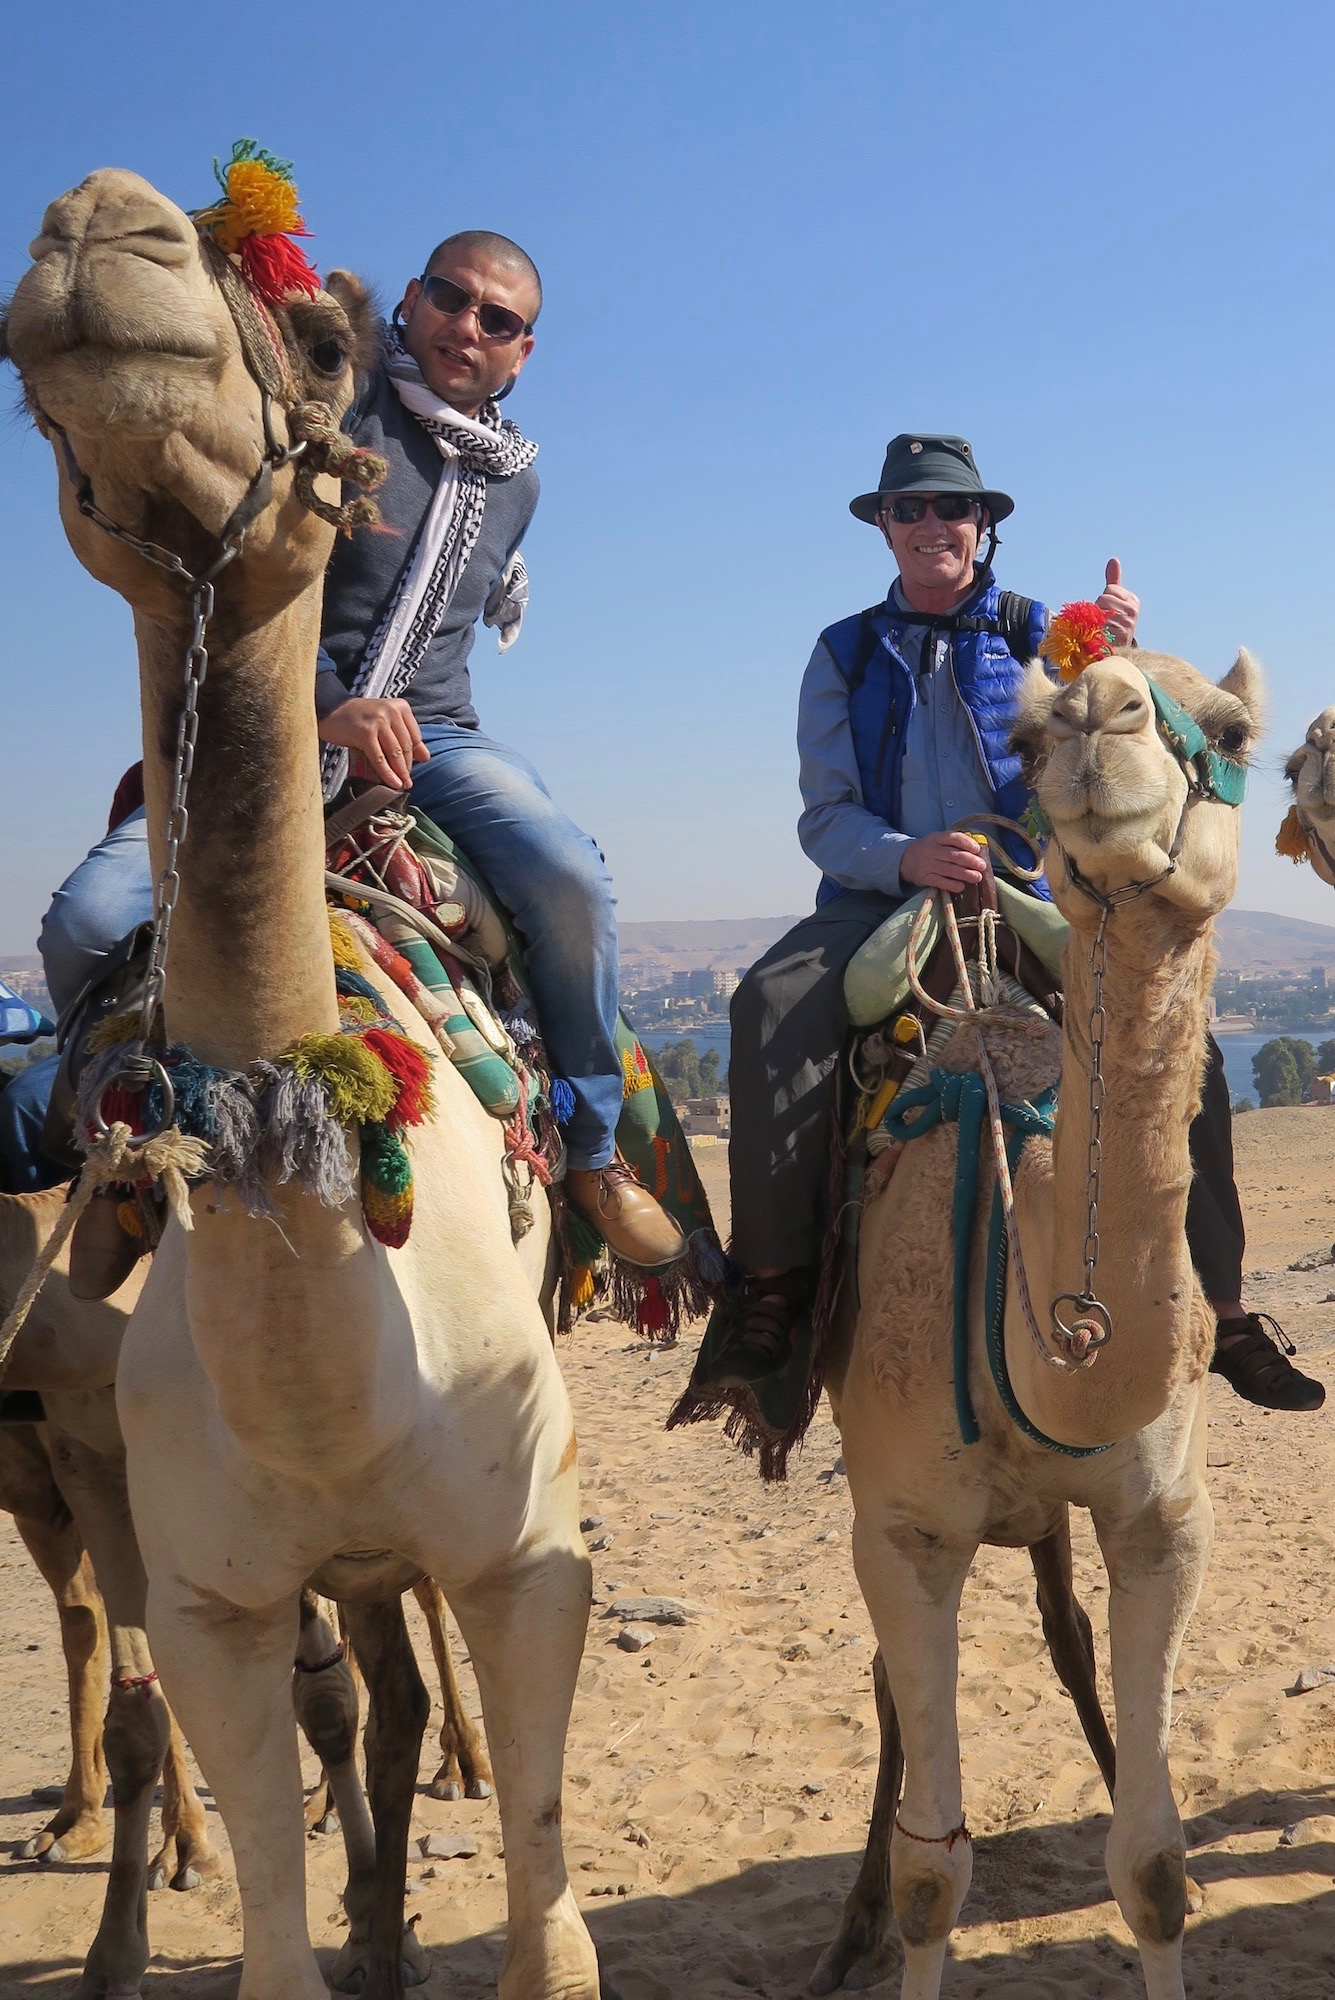 On a Camel with Ahmed on the way to St. Simeon Monastery